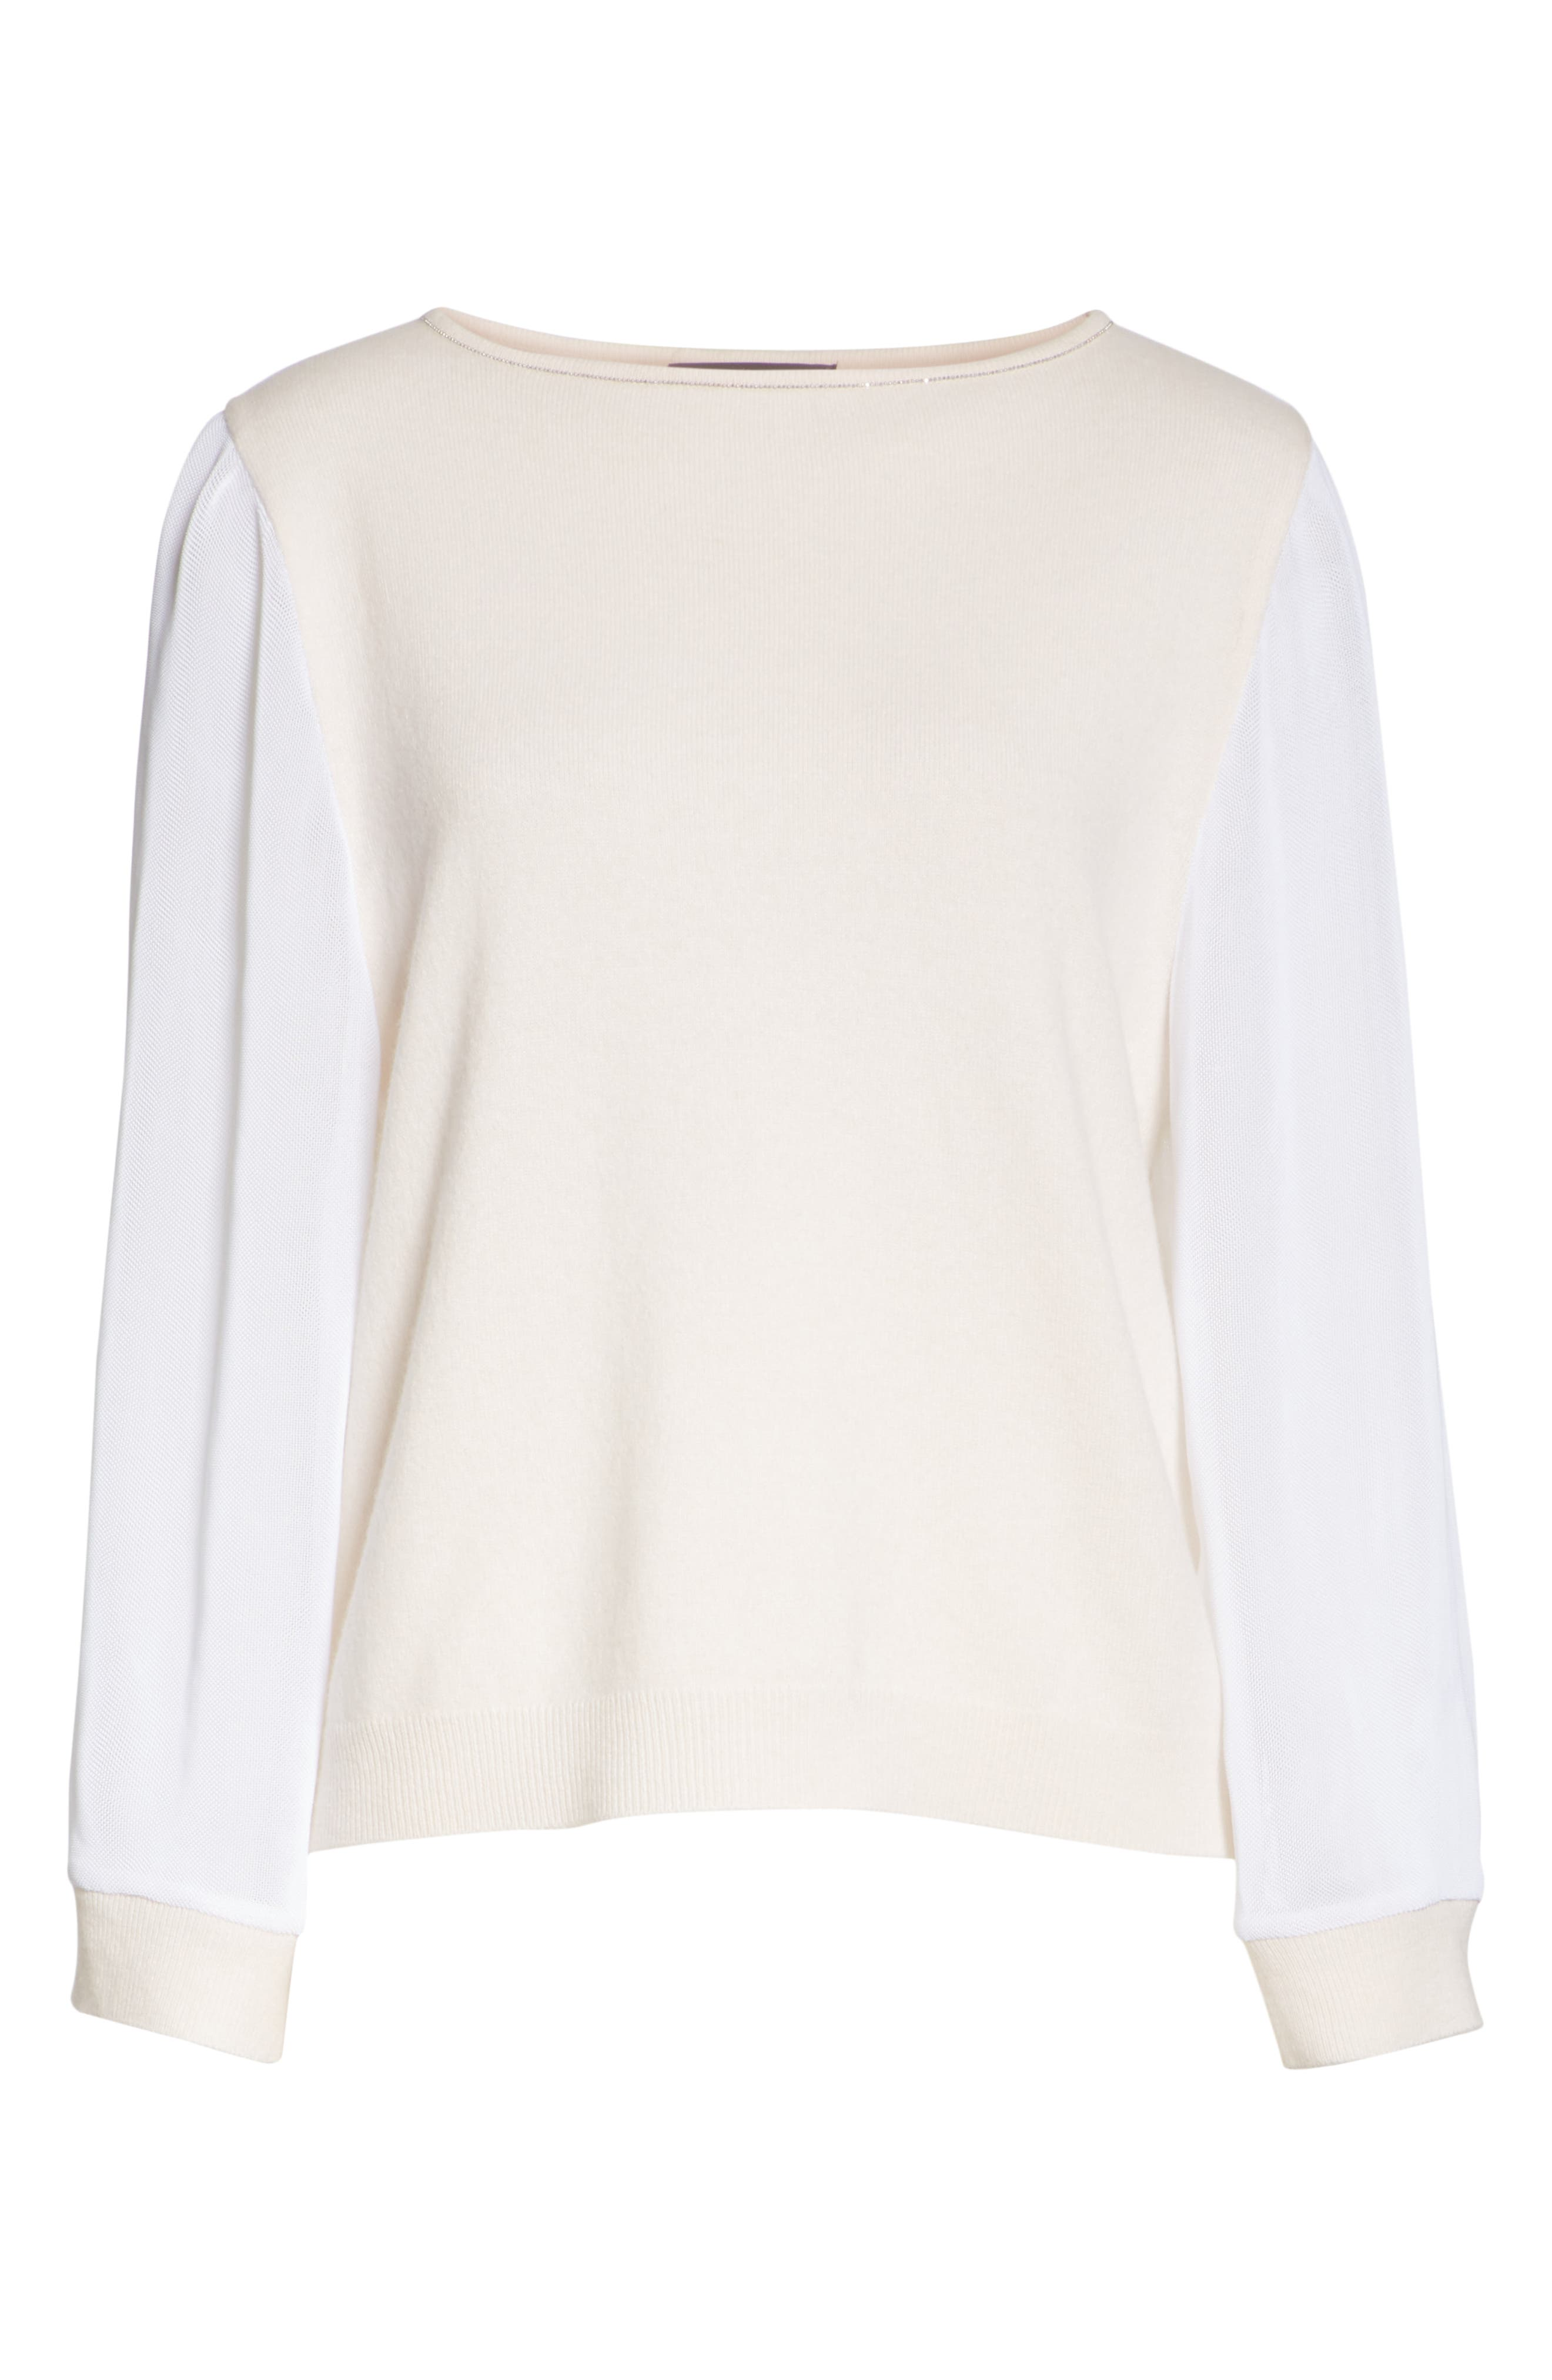 Mesh Sleeve Cashmere Sweater,                             Alternate thumbnail 6, color,                             020